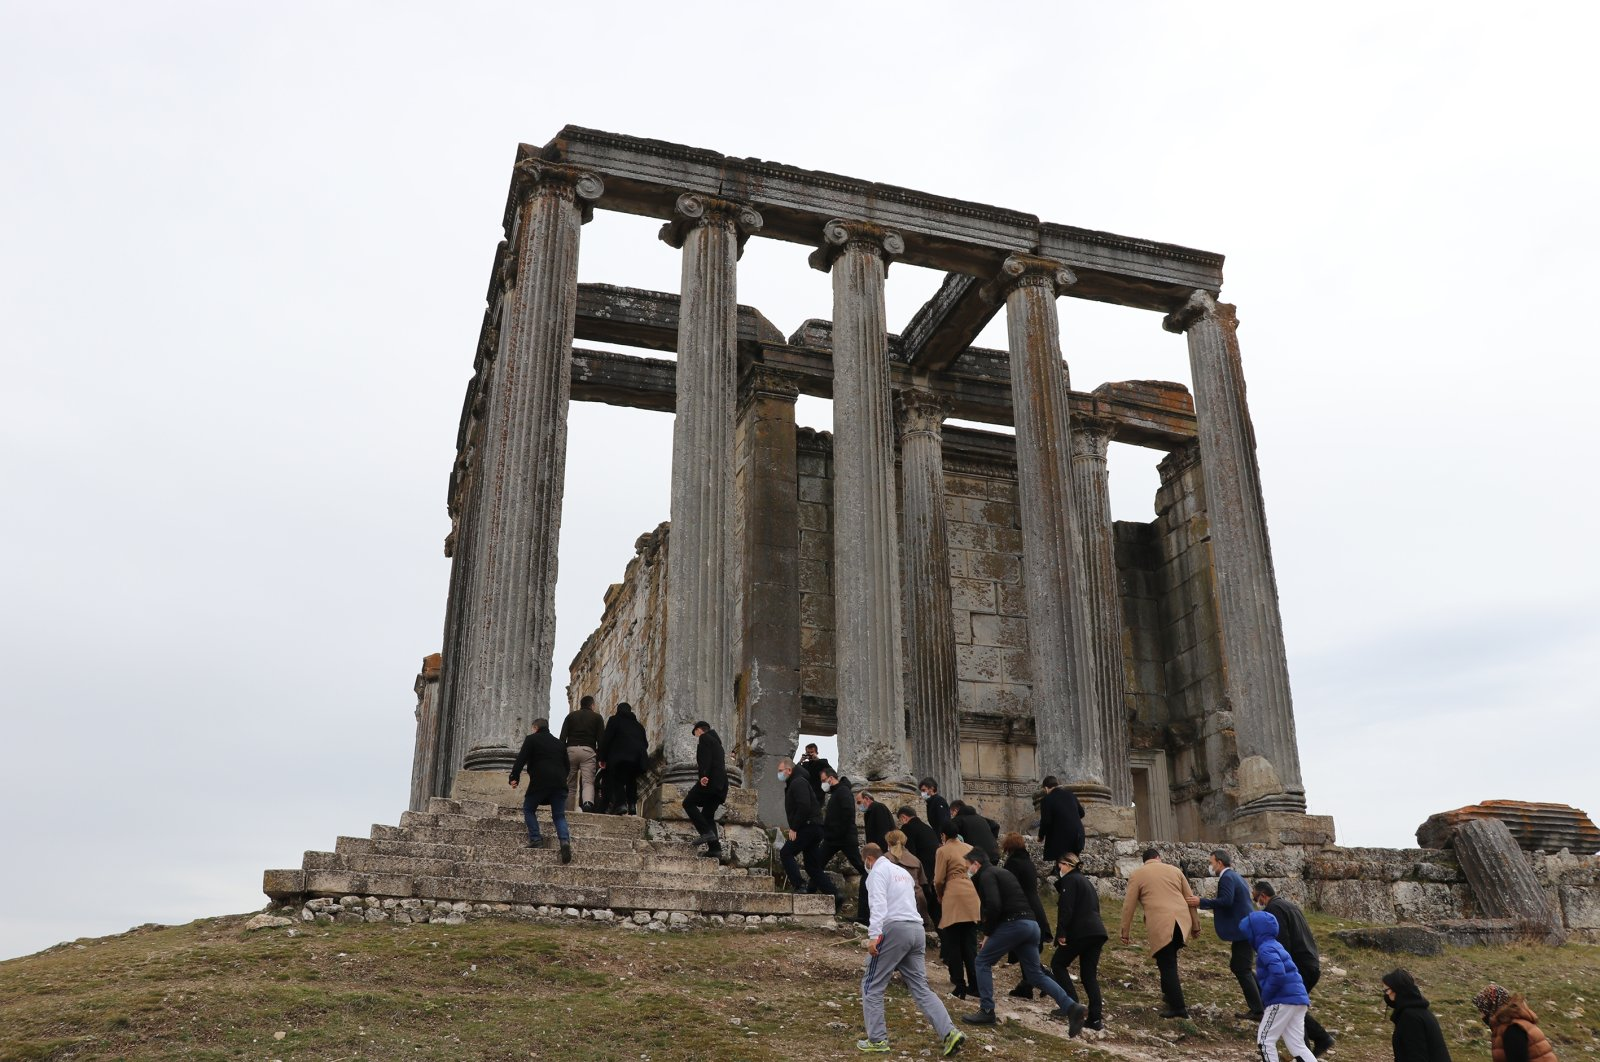 A group of people visit the ancient Temple of Zeus in the 5,000-year-old city of Aizanoi, Kütahya, western Turkey, March 14, 2021. (AA Photo)